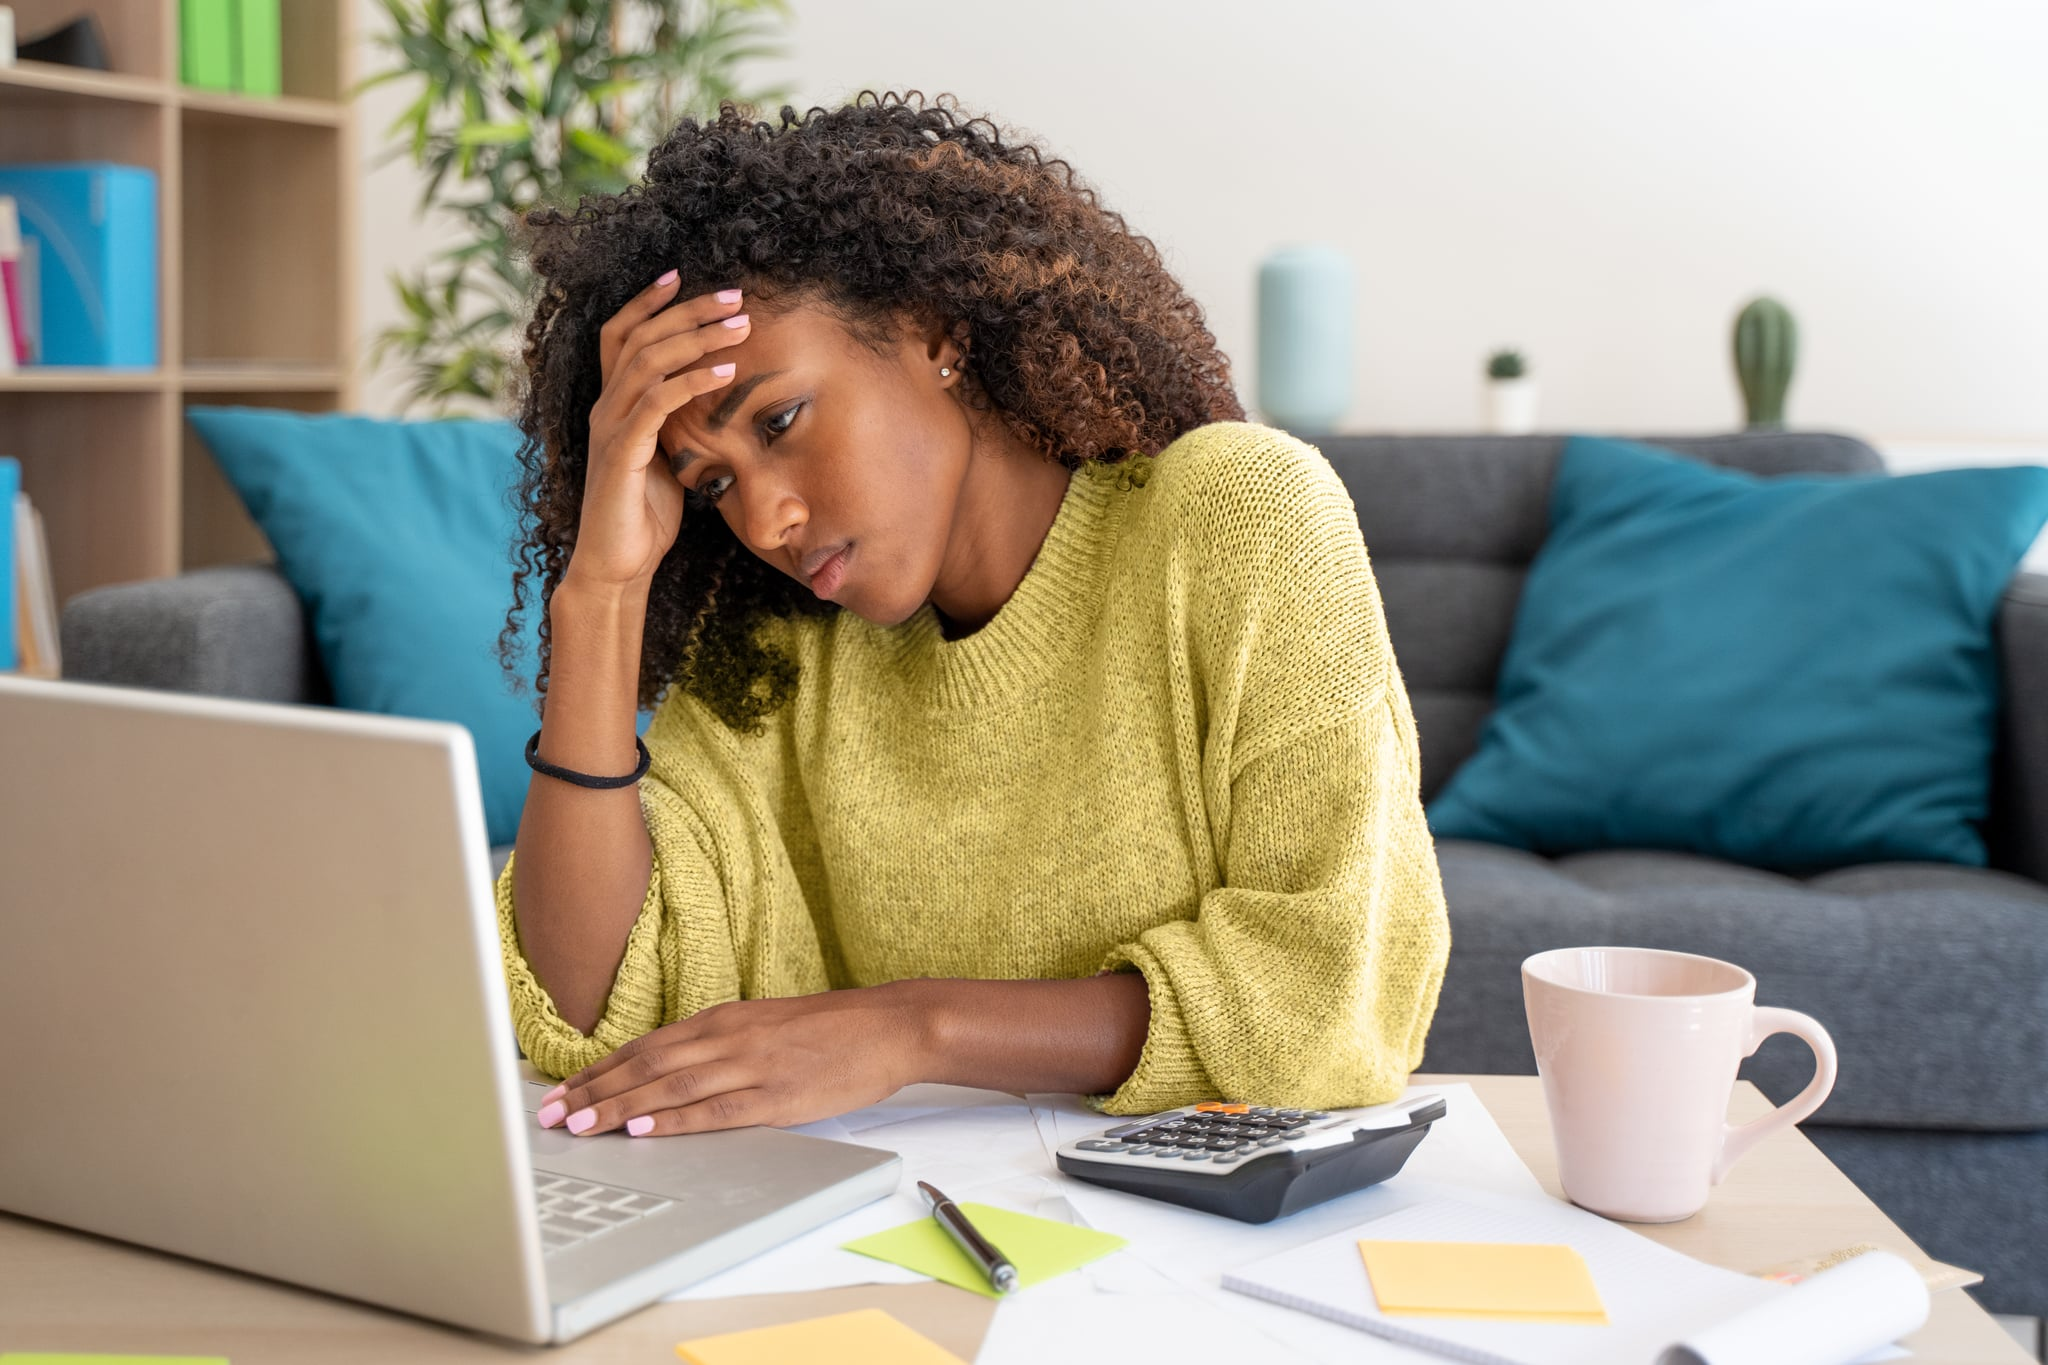 Stressed black woman working at home alone